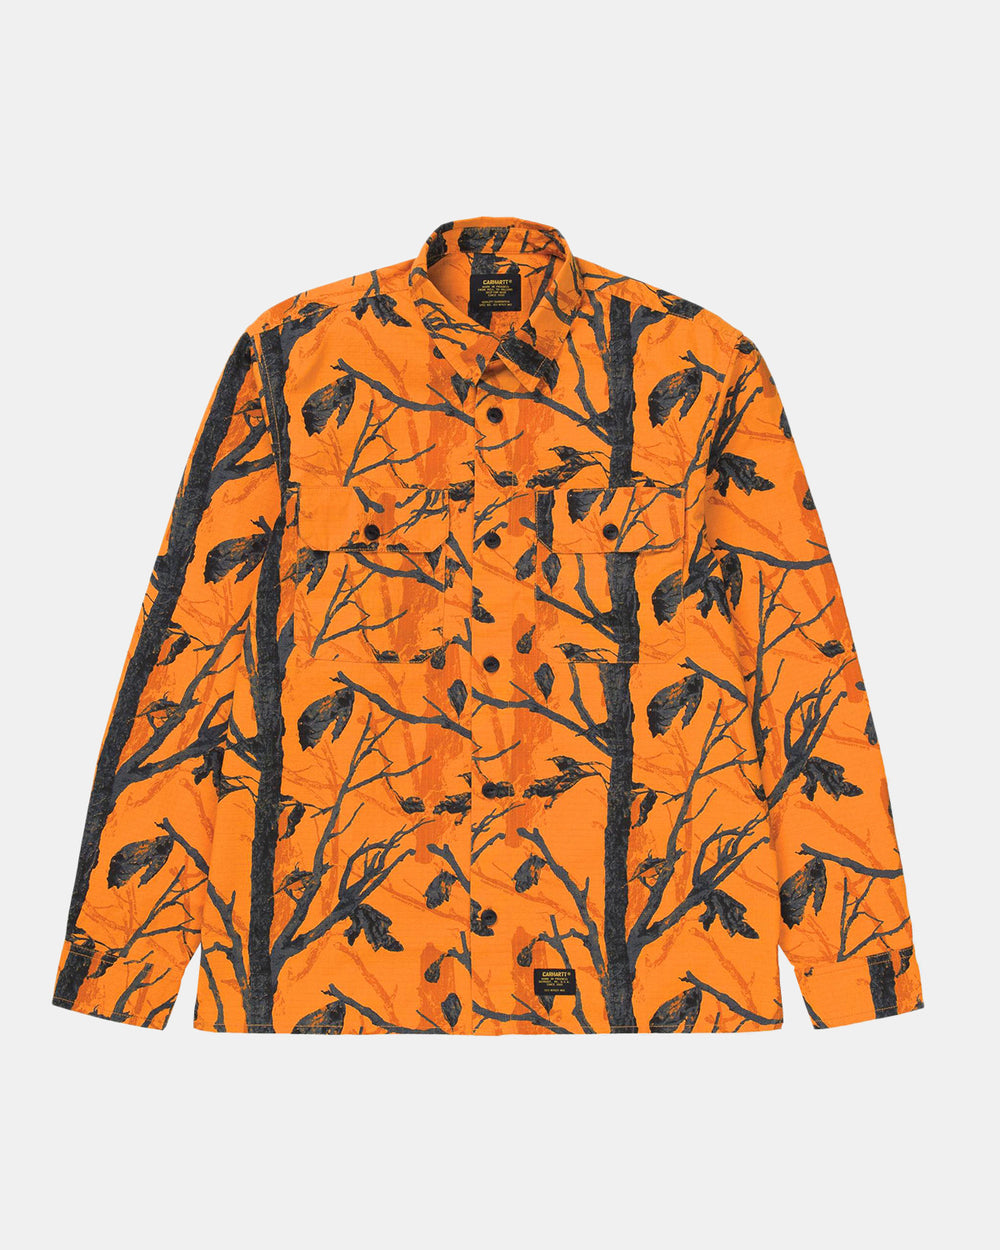 Carhartt WIP - Mission Shirt (Orange Tree Camo)